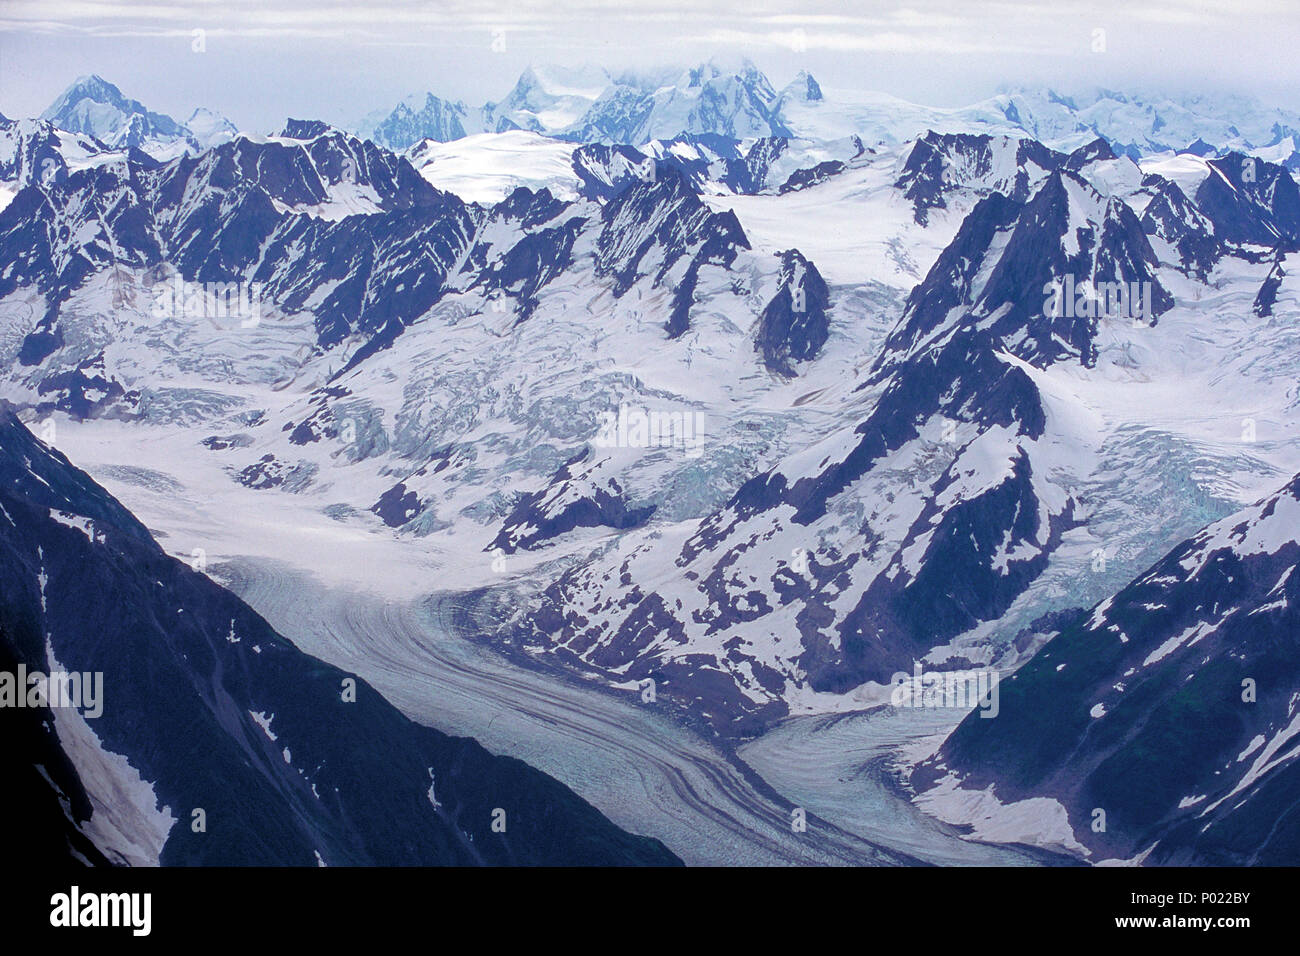 Glacier at Yukon, great landscapes, snow, ice, mountains, Alaska range, Yukon, Canada - Stock Image